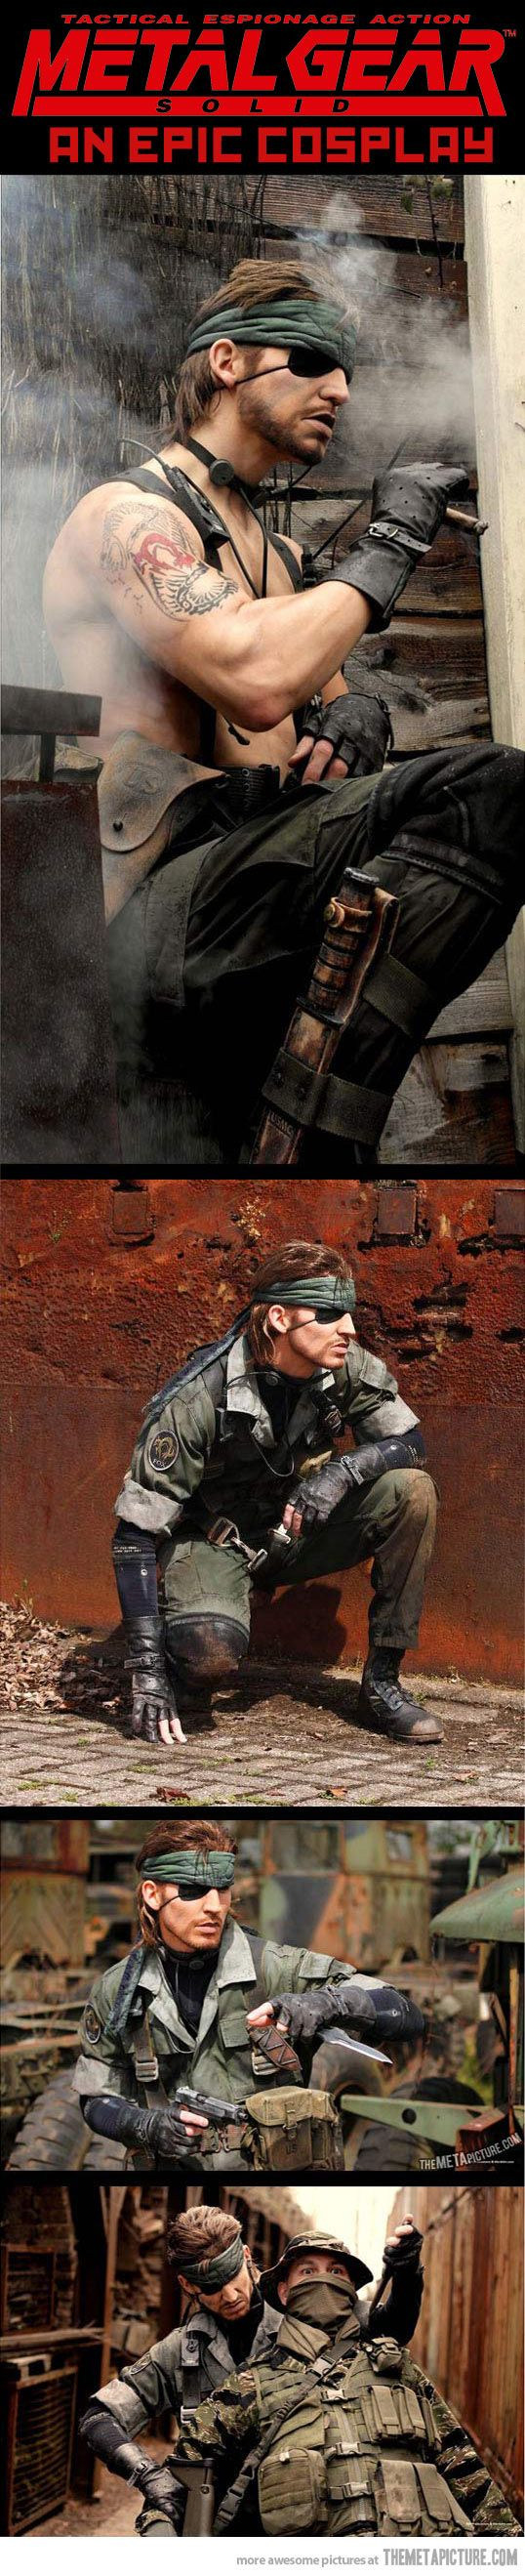 Metal Gear Solid Cosplay This guy should play Snake if they make a film, he looks just like him!